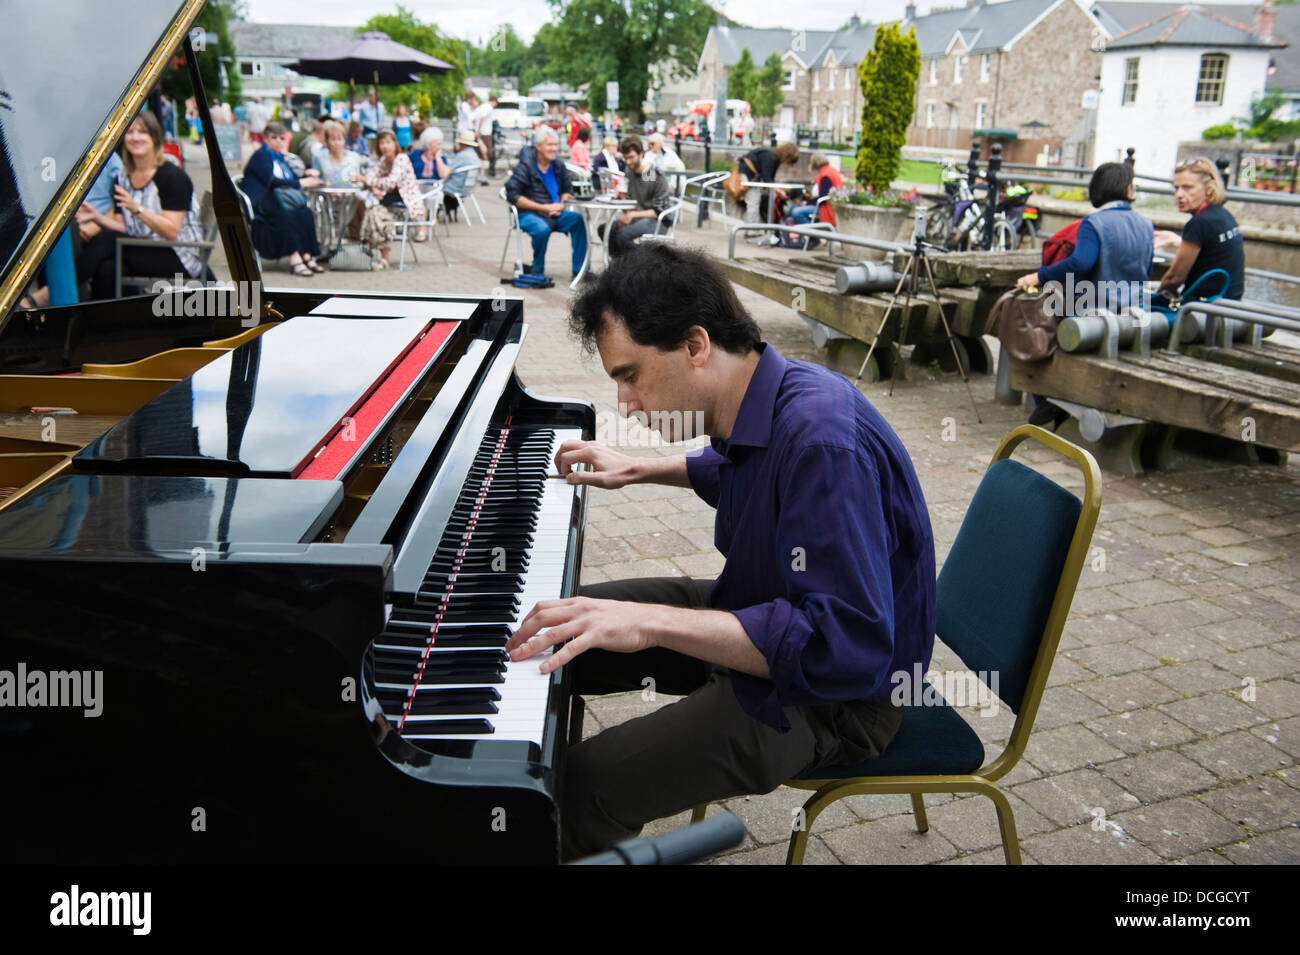 Pianist Sergei playing piano entertaining crowds outside canalside during Brecon Jazz Festival - Stock Image